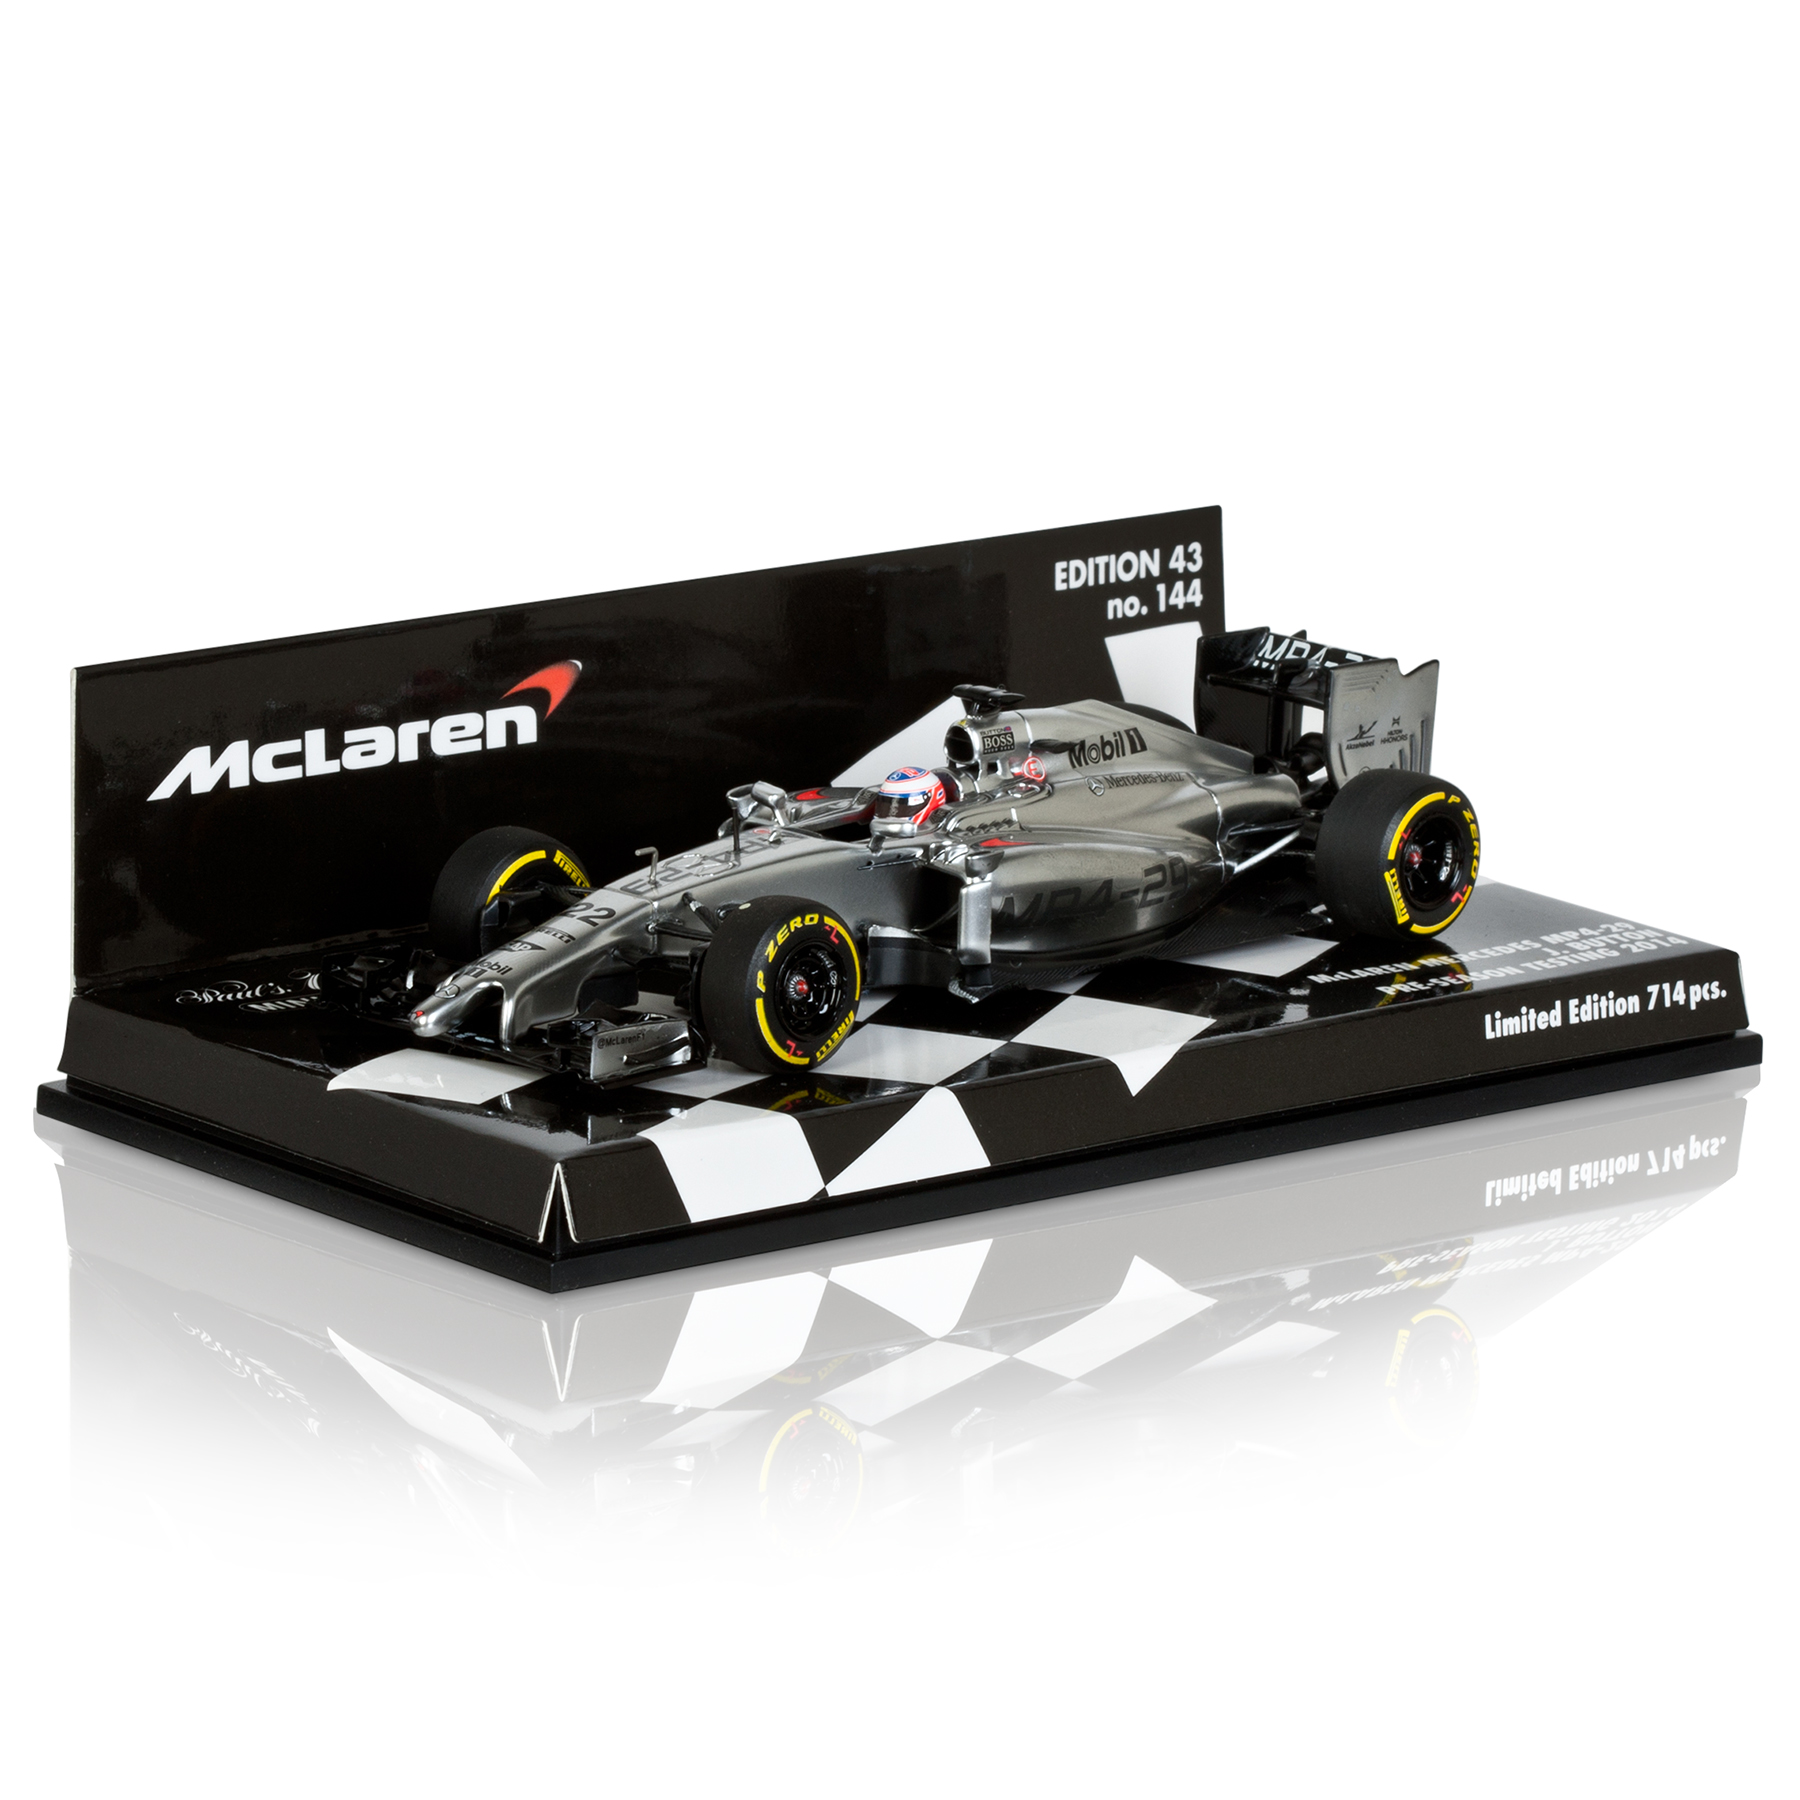 McLaren Mercedes MP4-29 Jenson Button 1:43 Scale Model